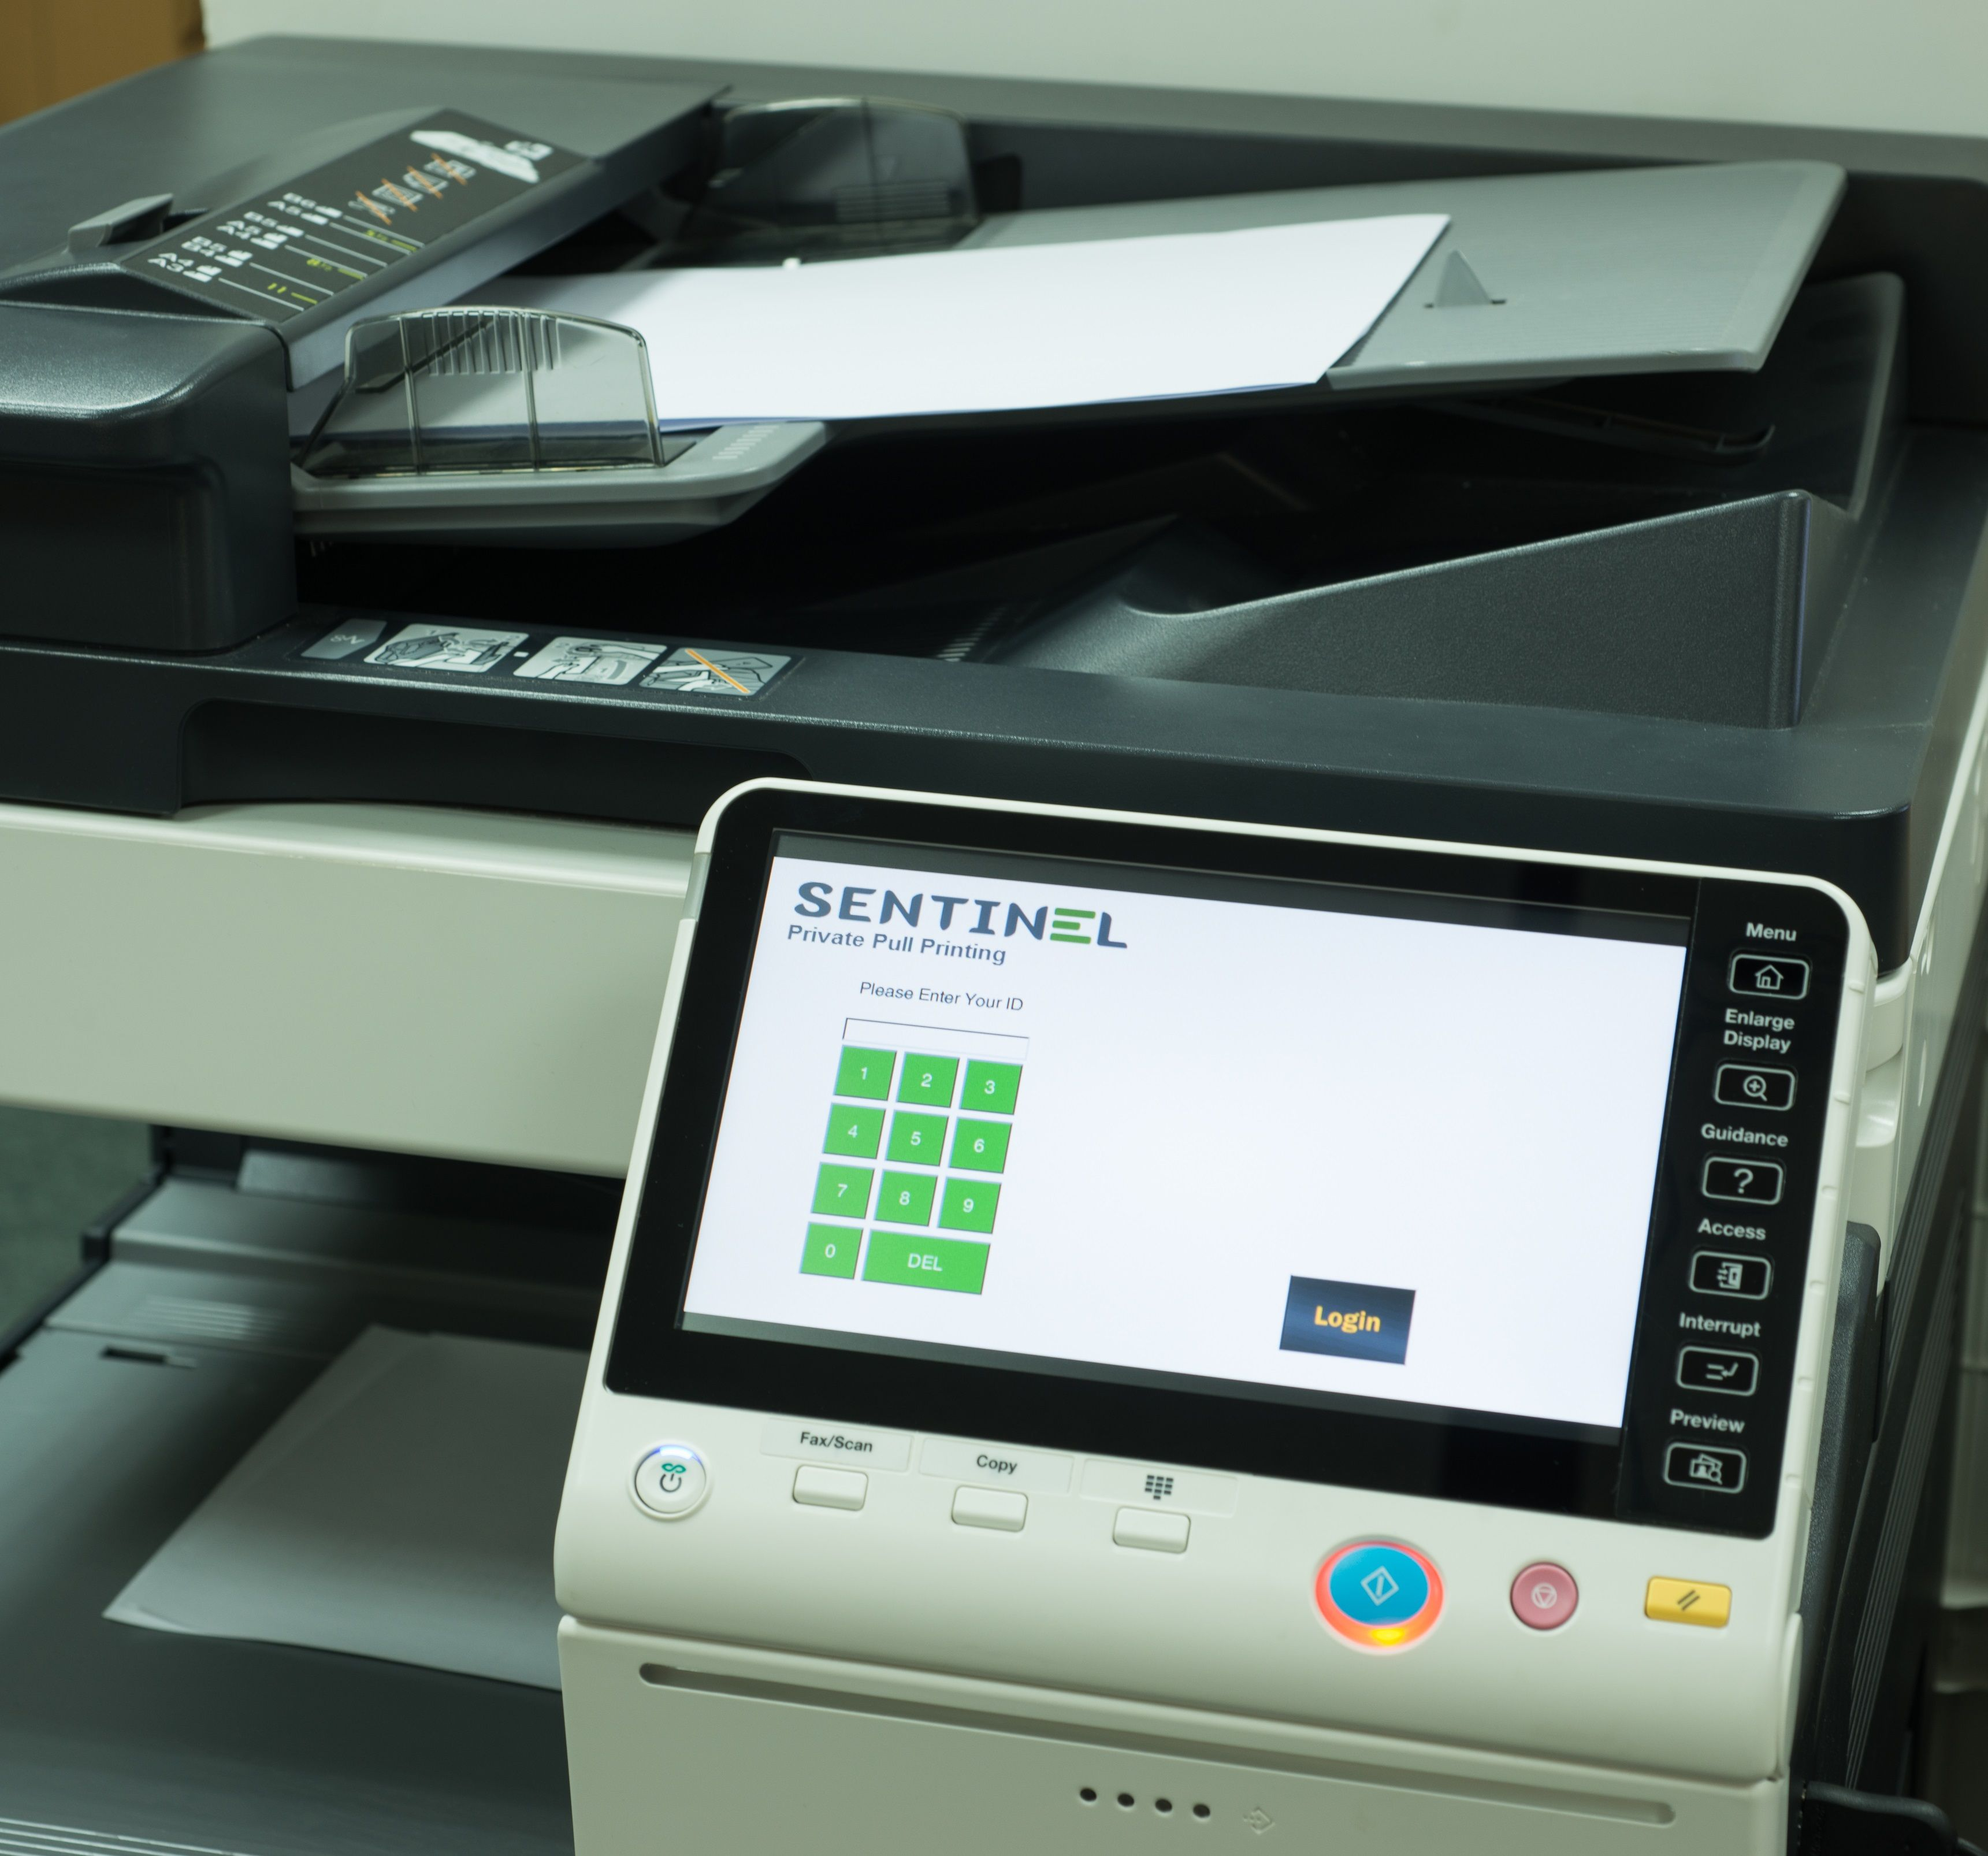 Embedded printing software